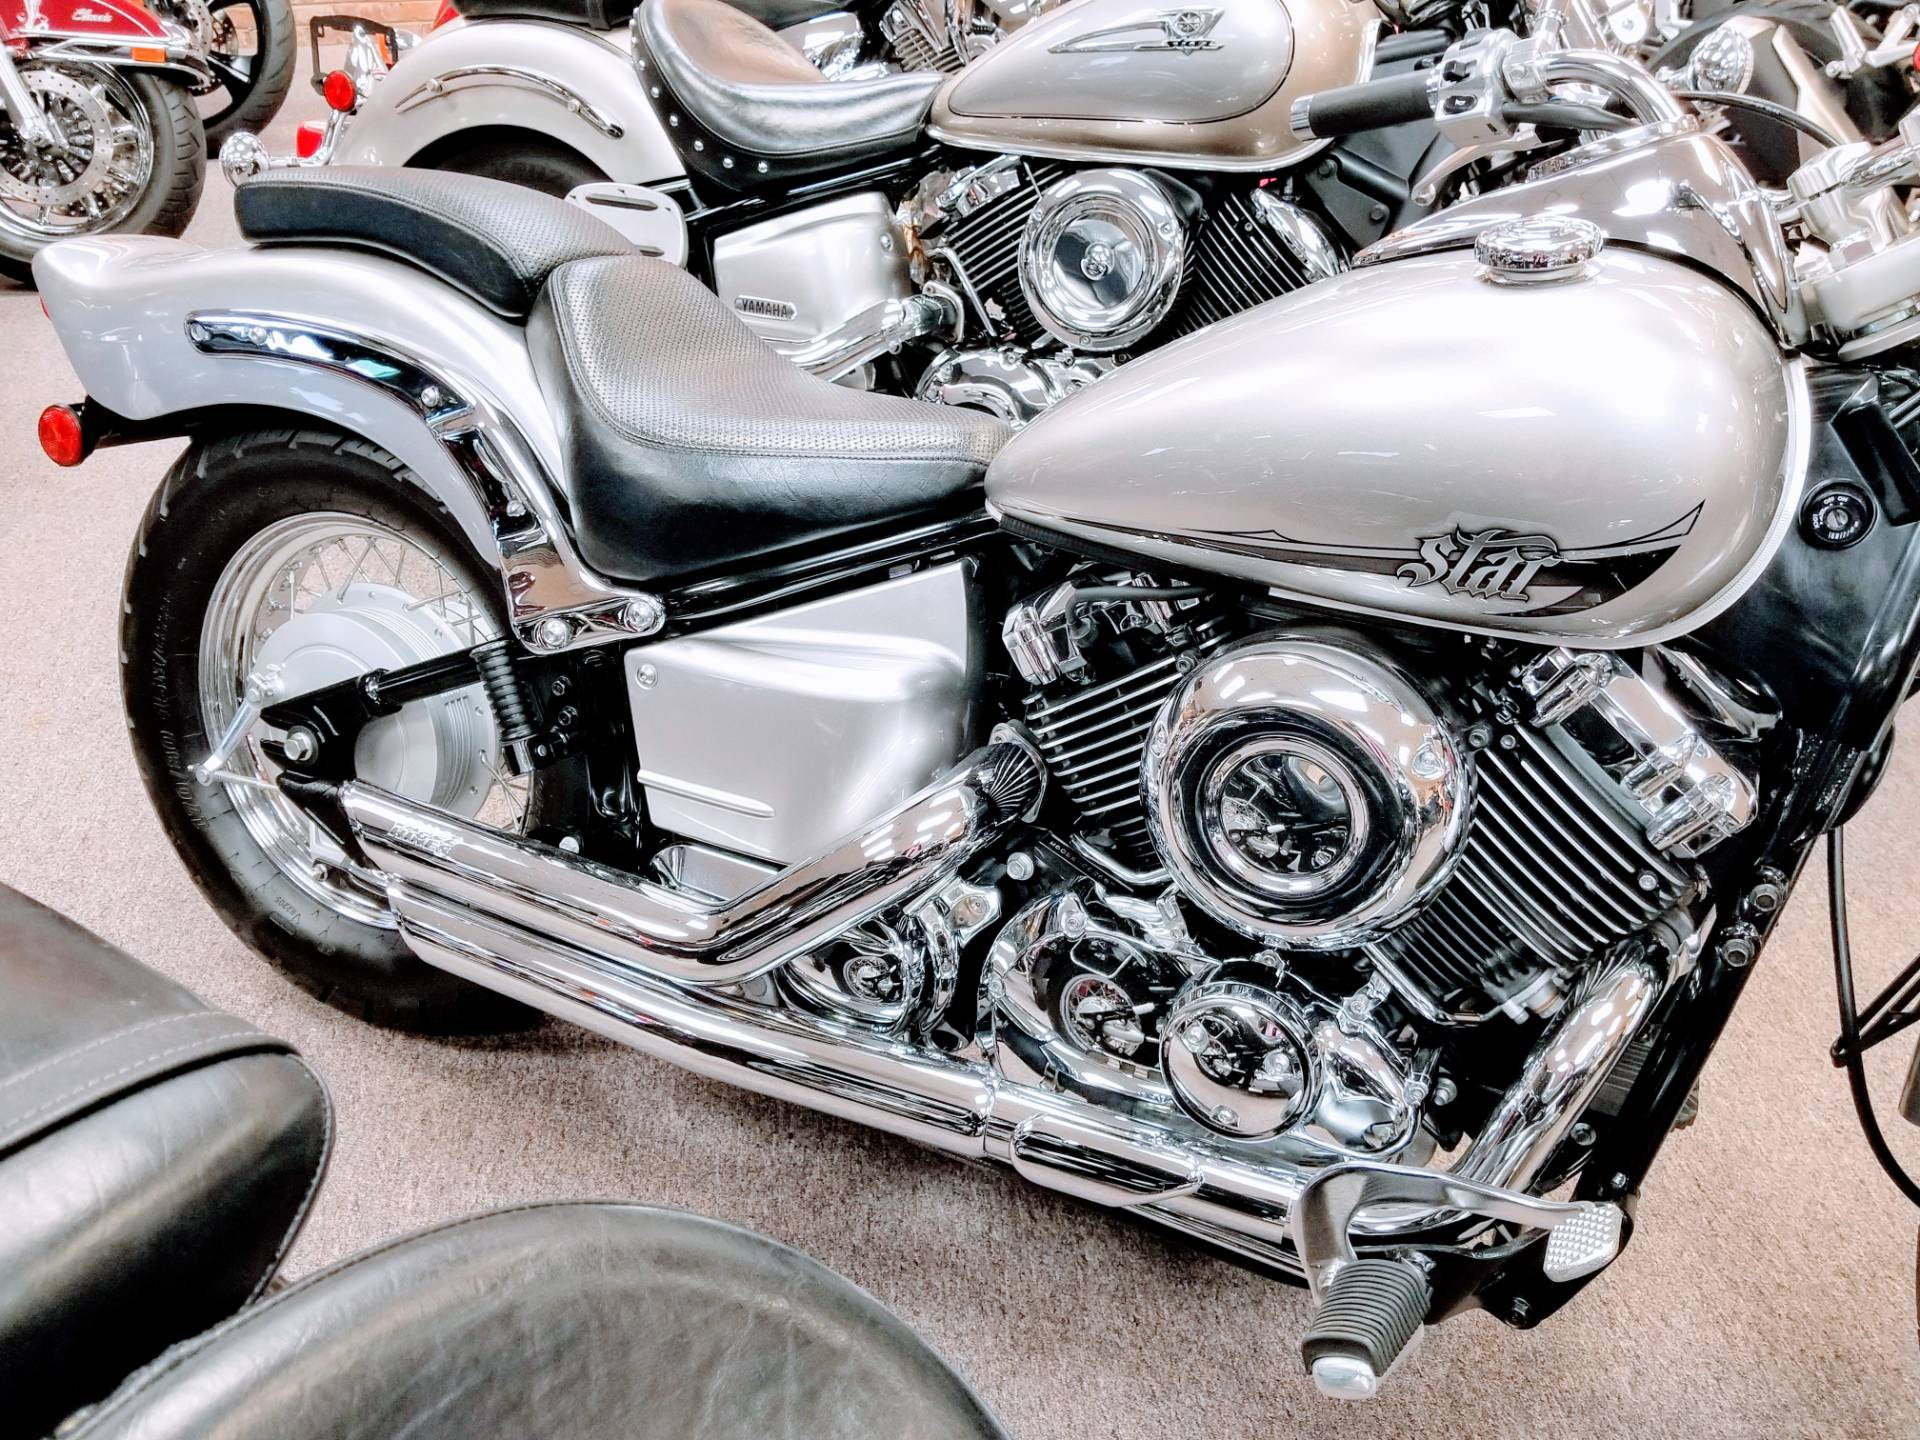 2014 Yamaha V Star 650 Custom in Statesville, North Carolina